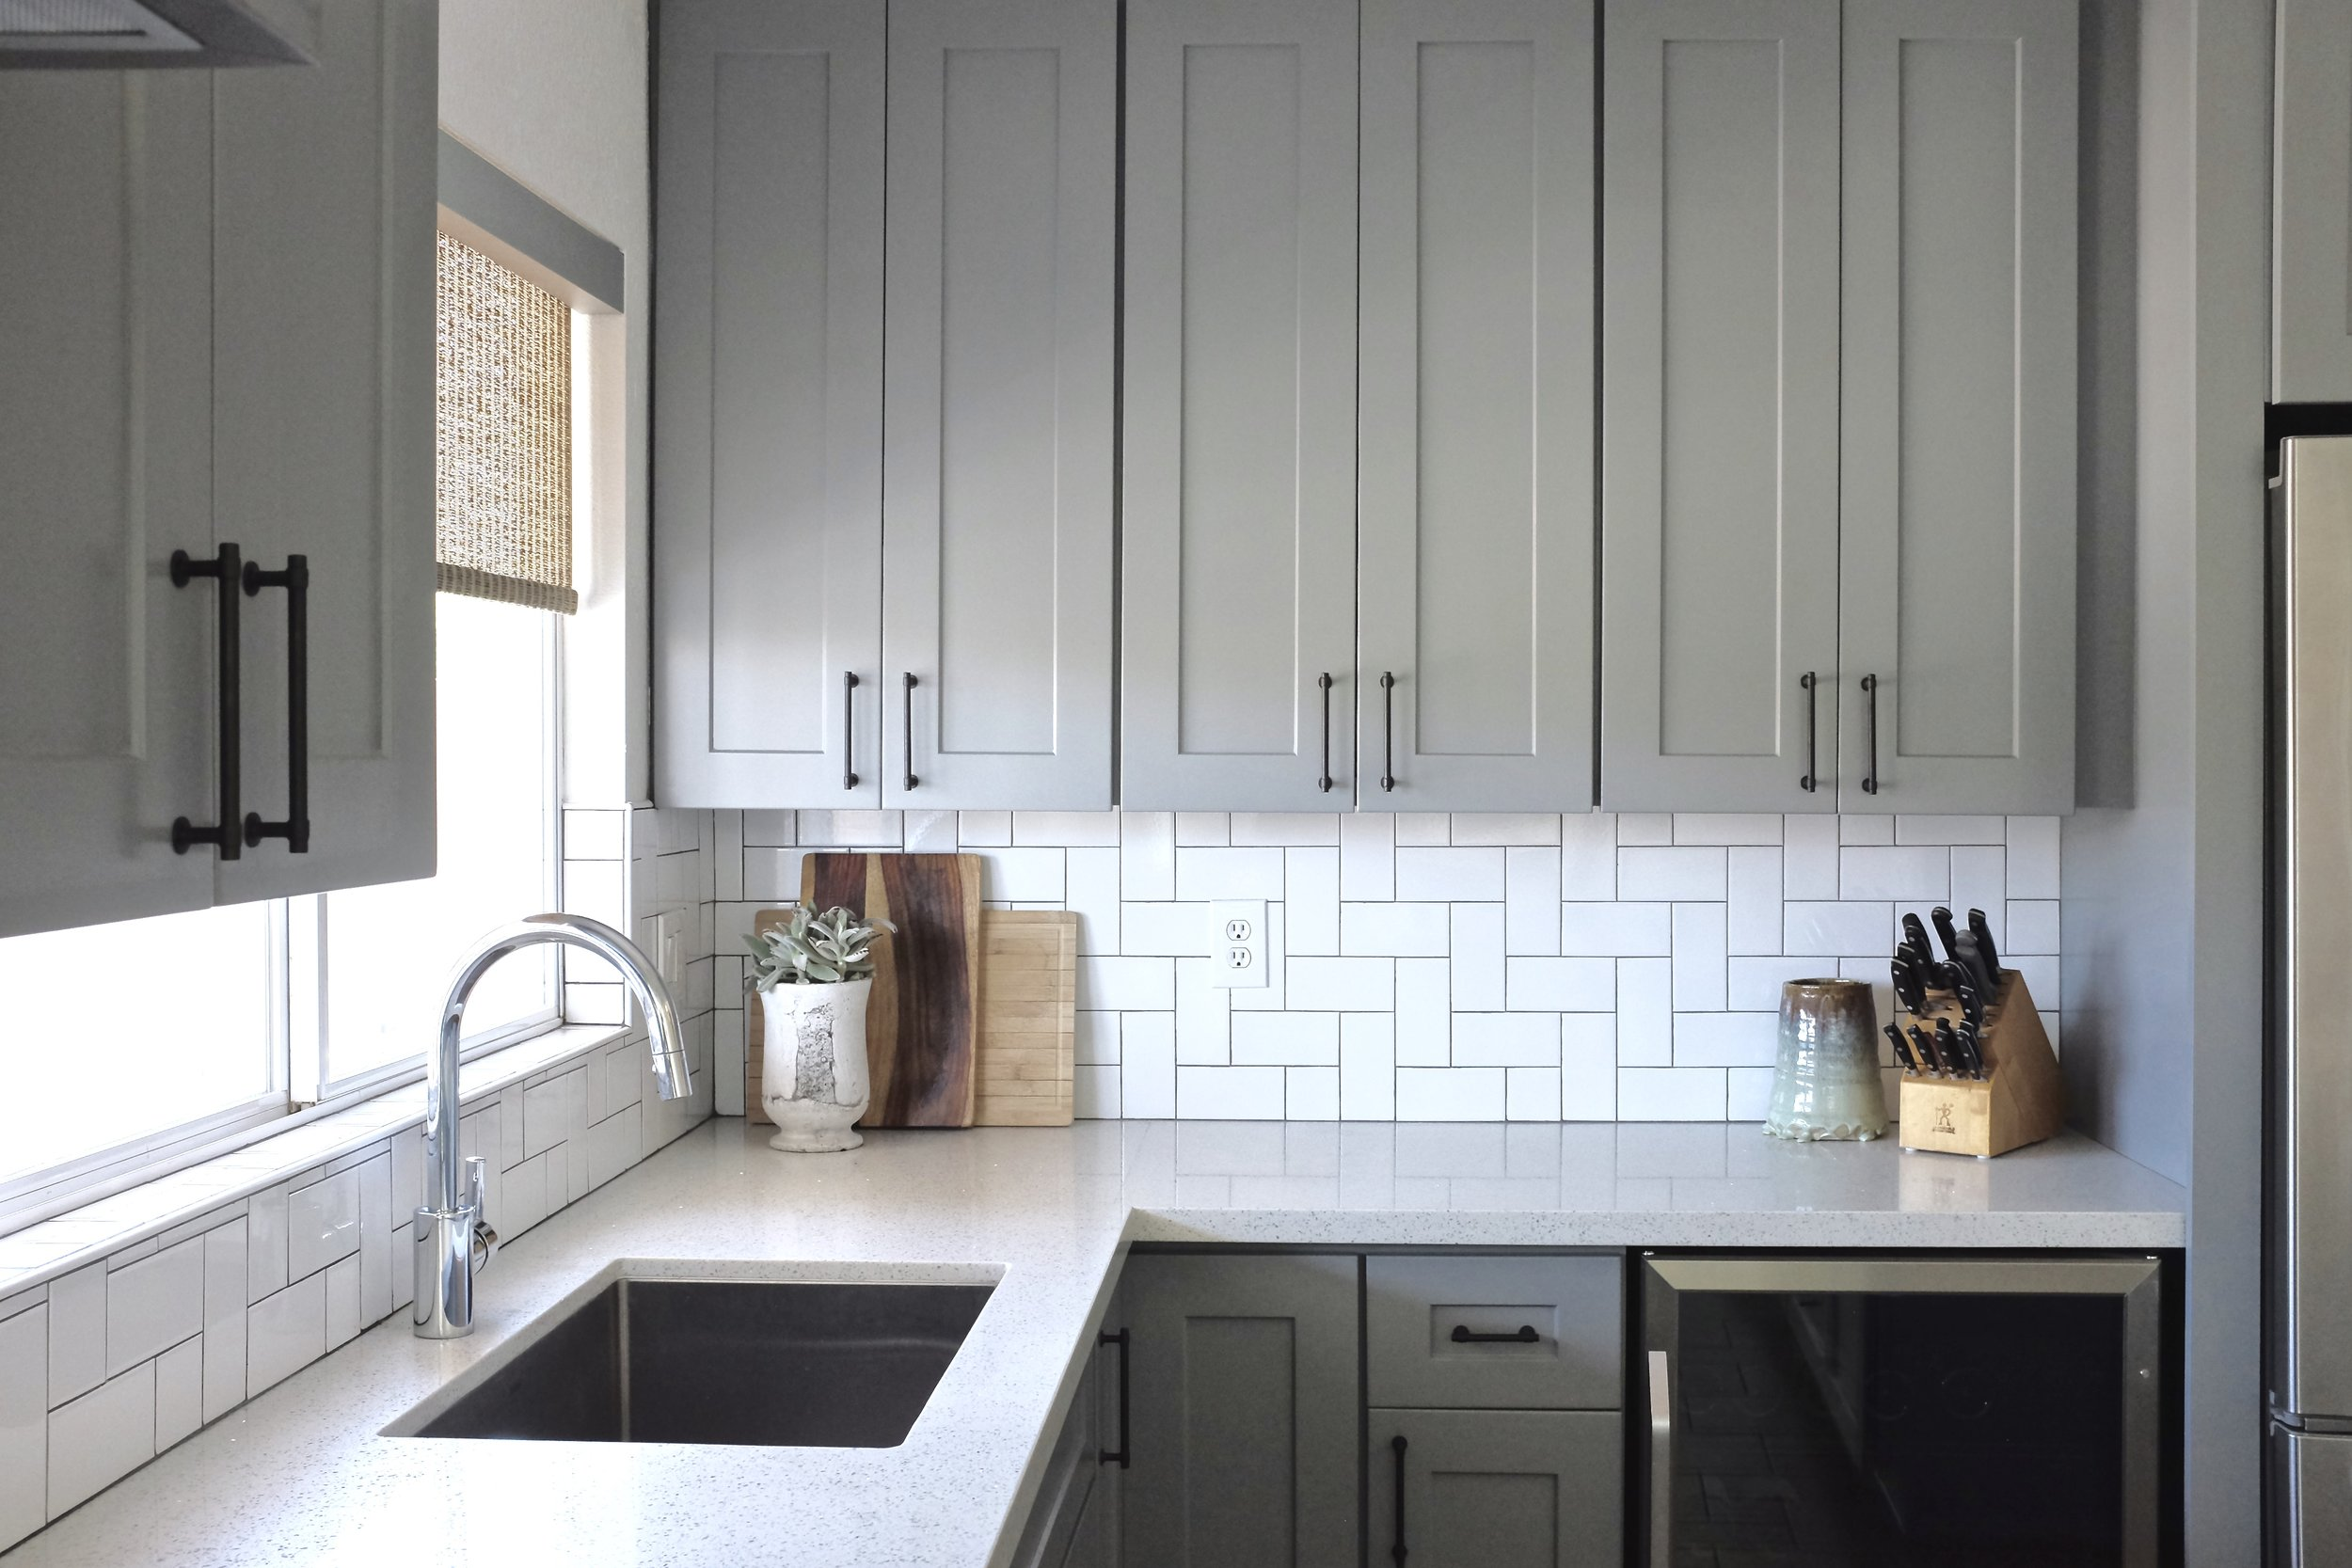 Click to see more of this kitchen